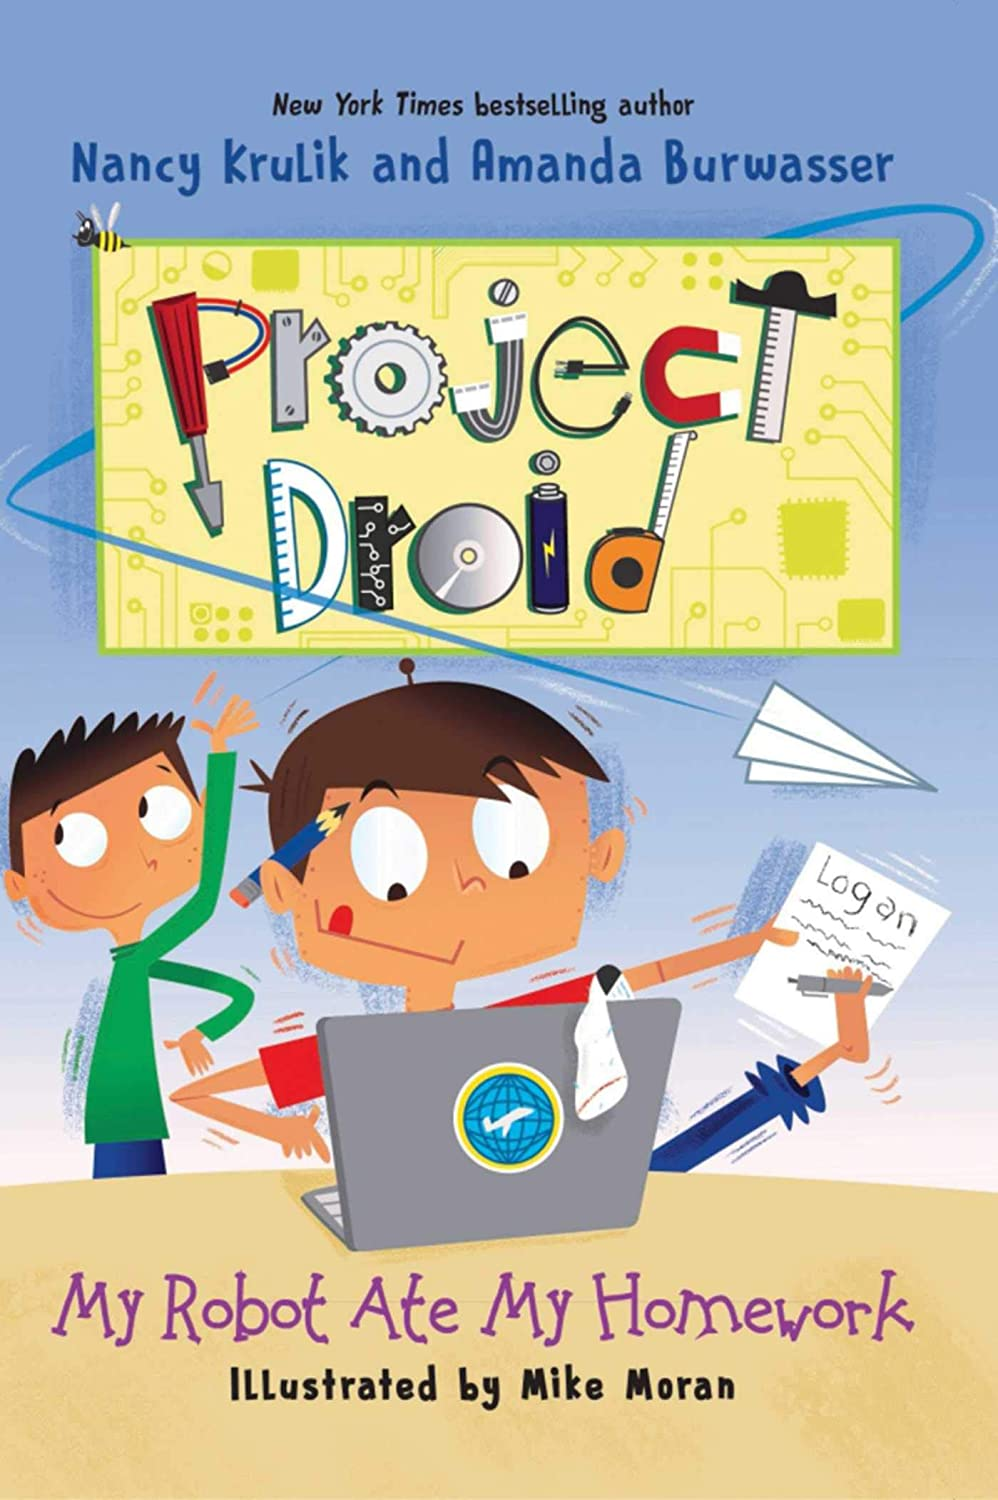 My Robot Ate My Homework: Project Droid #3 (English Edition) eBook: Krulik, Nancy, Burwasser, Amanda, Moran, Mike: Amazon.es: Tienda Kindle